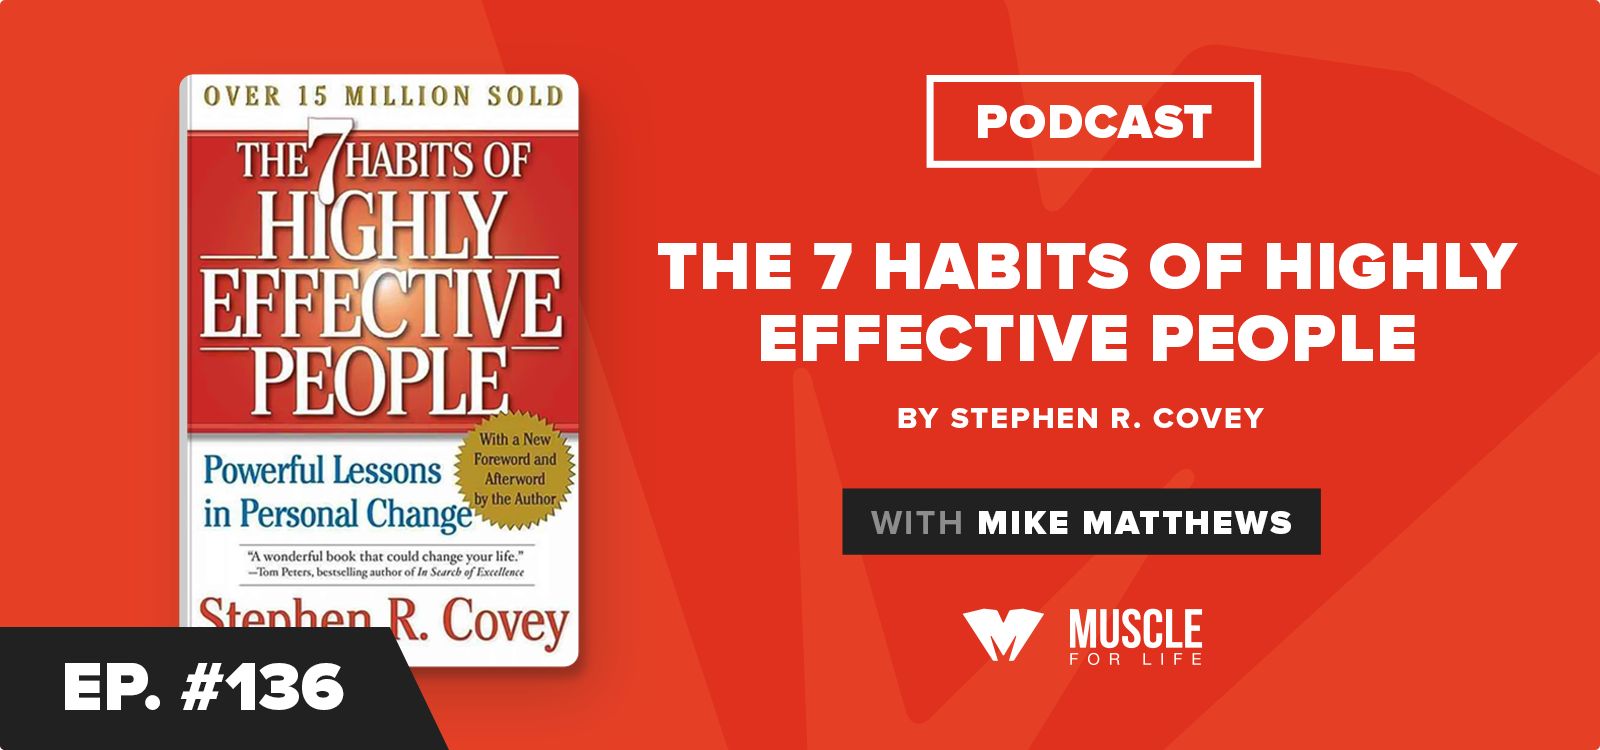 MFL Book Club Podcast: 7 Habits of Highly Effective People by Stephen Covey